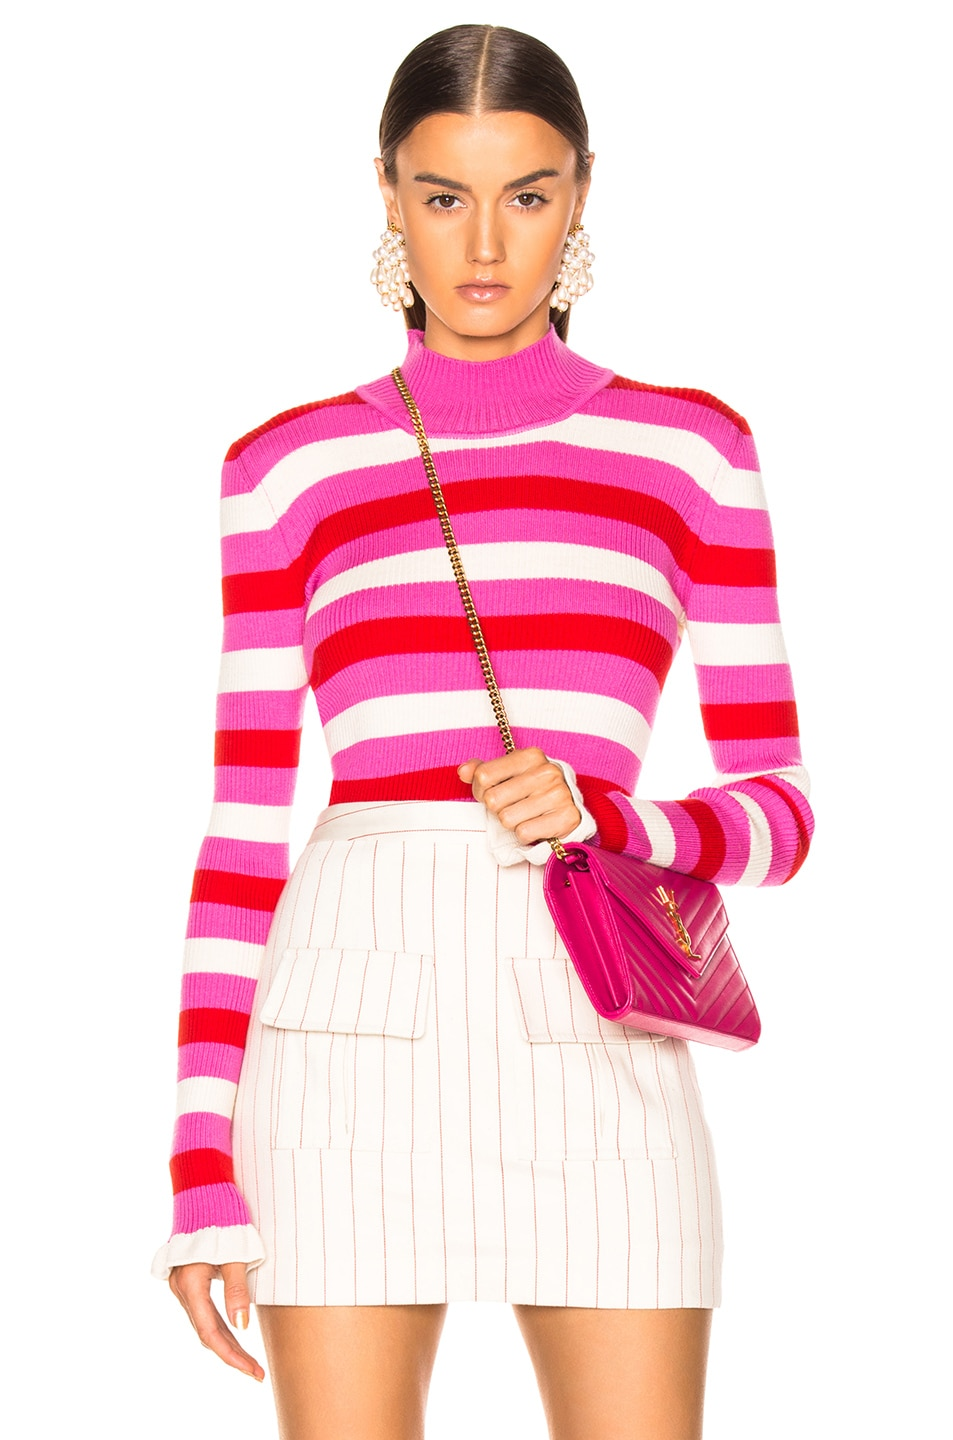 Image 1 of Maggie Marilyn You Make Me Happy Top in Pink, White, Red Stripe